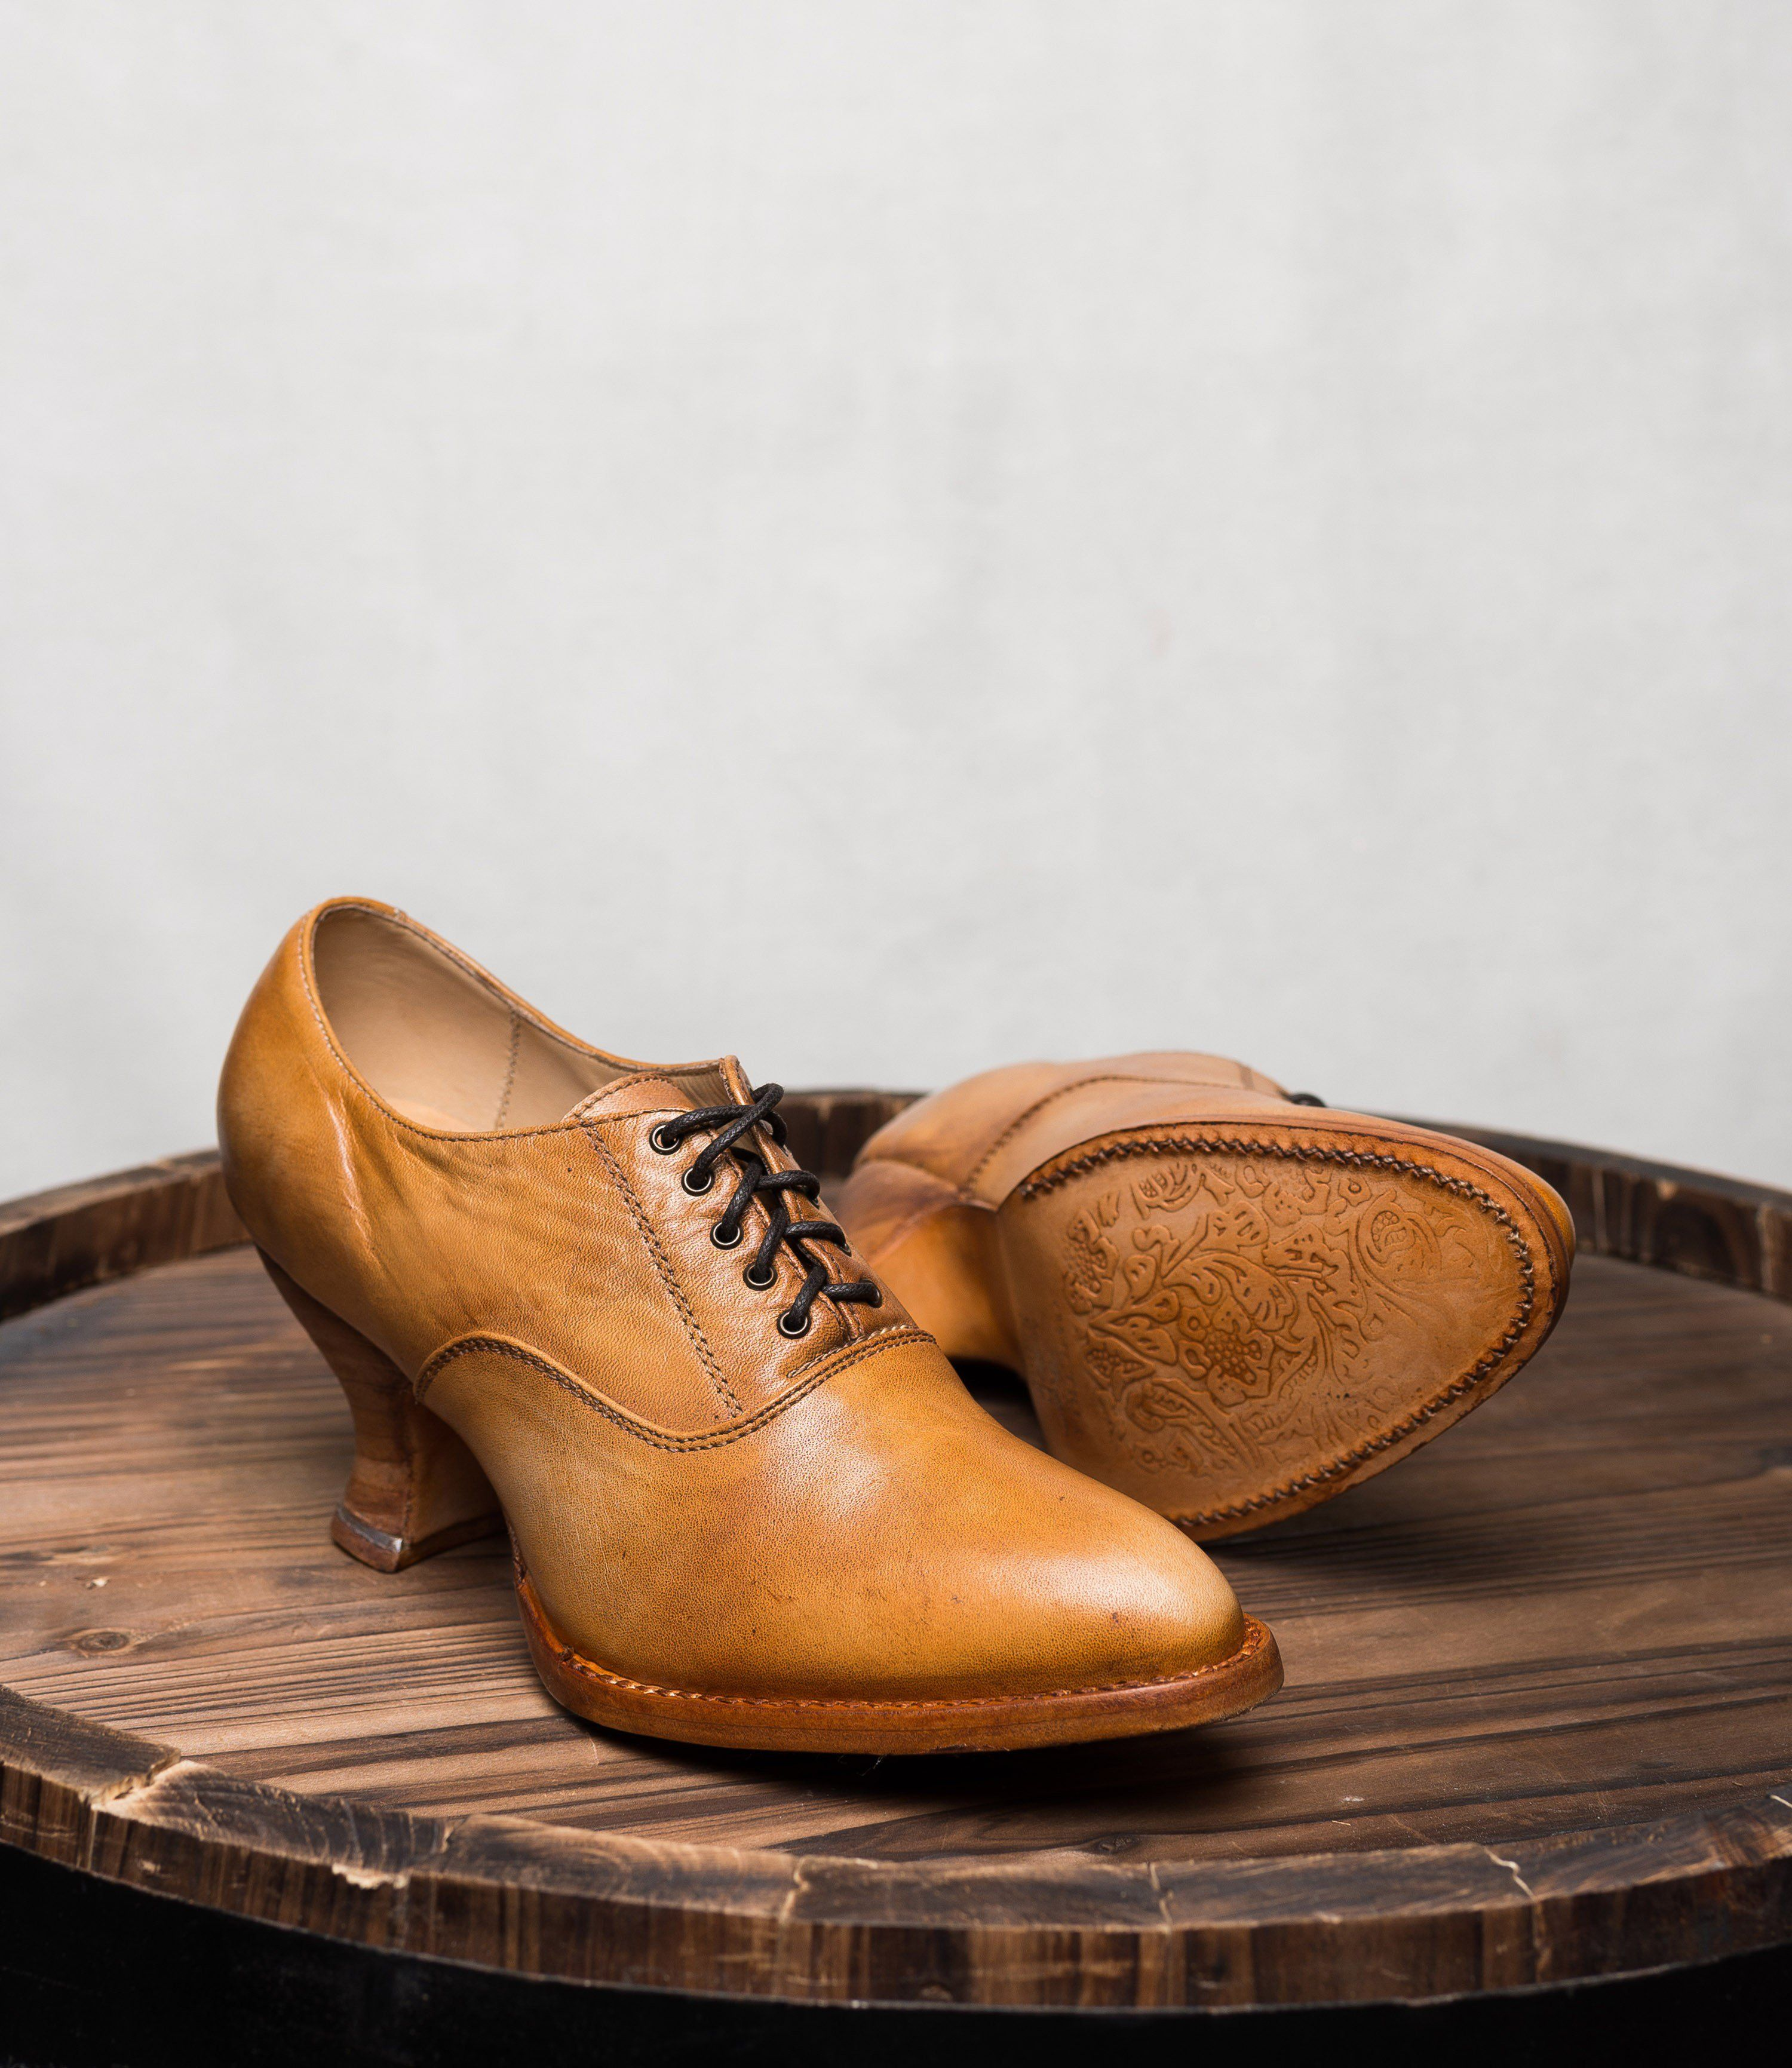 Victorian Style Leather Lace Up Shoes In Natural Rustic Victorian Shoes Vintage Style Shoes Lace Up Shoes